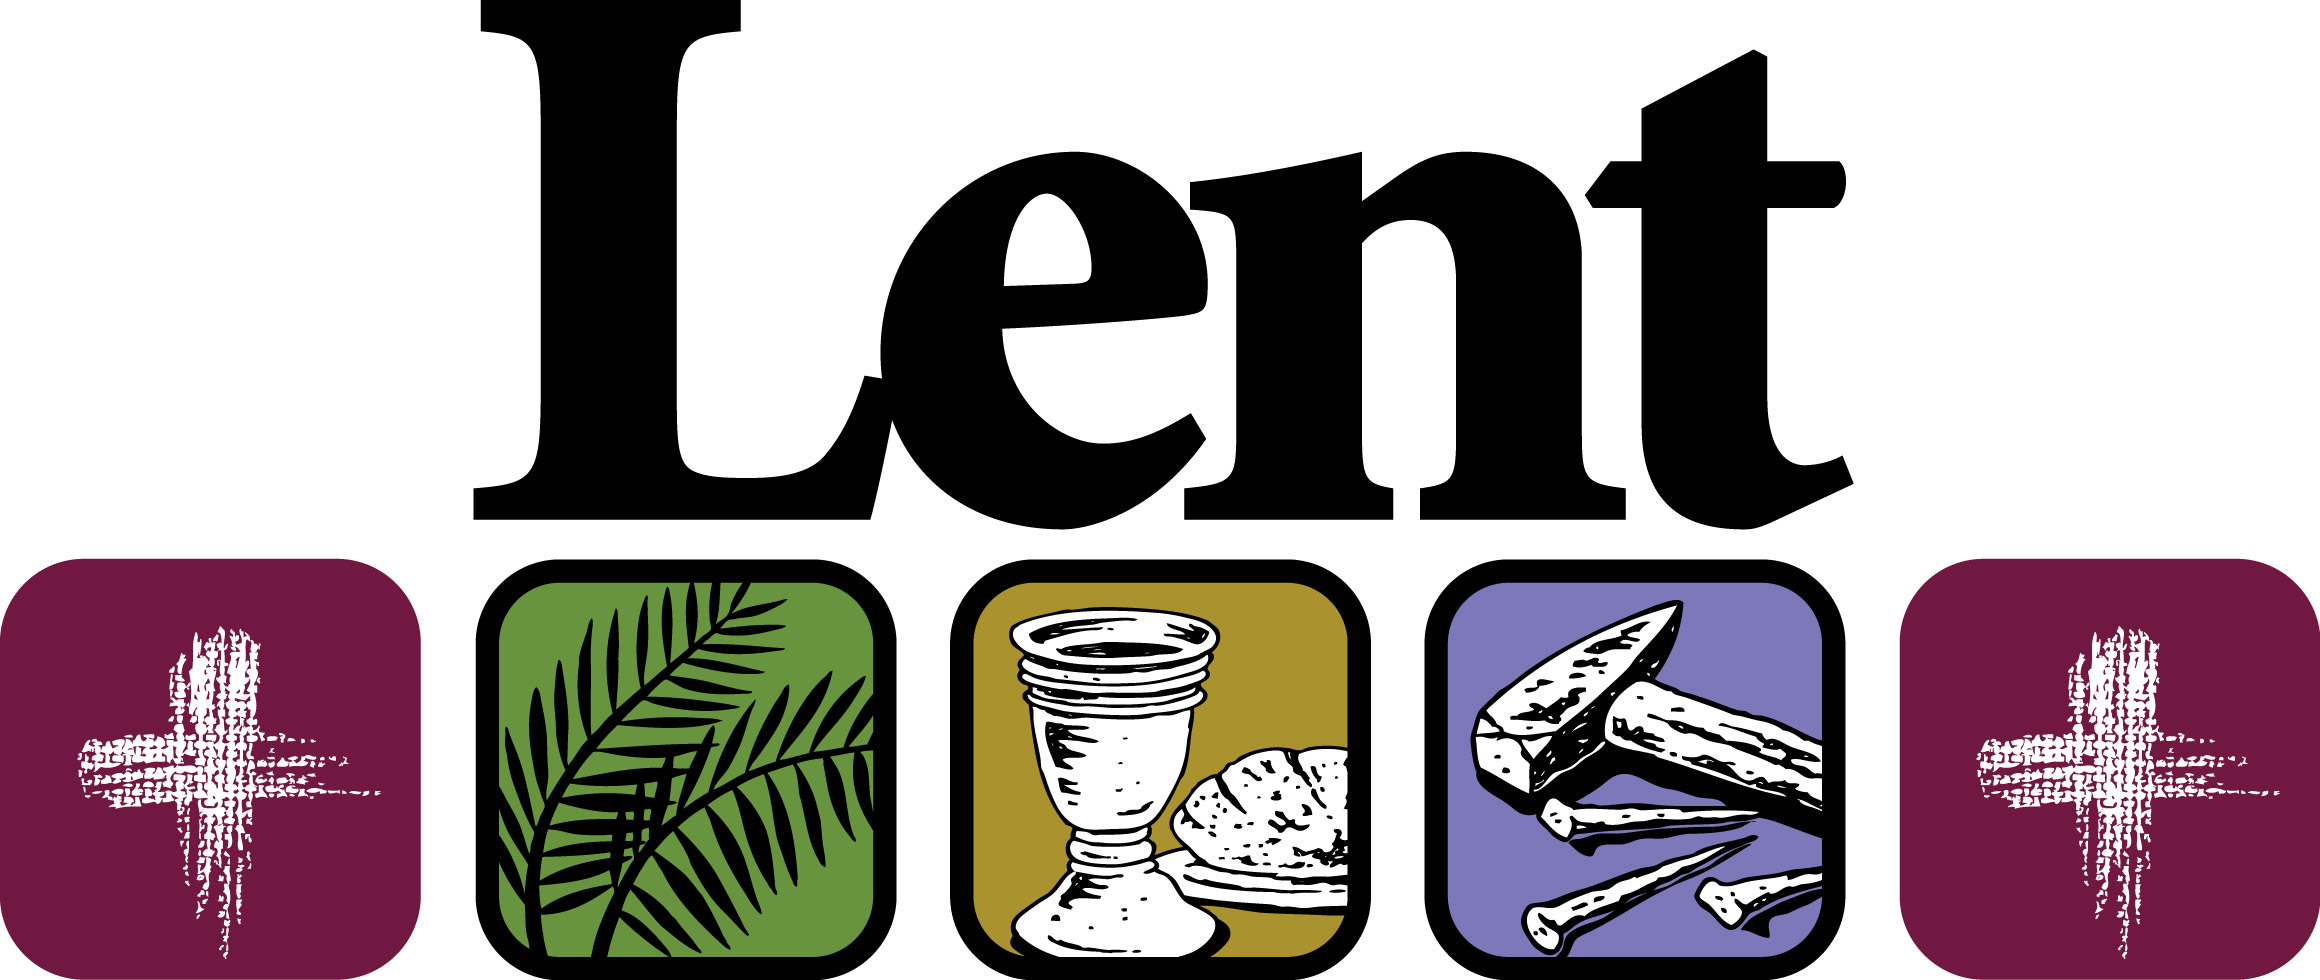 2320x980 Lent Clipart Our Lady Queen Of All Saints Catholic Church